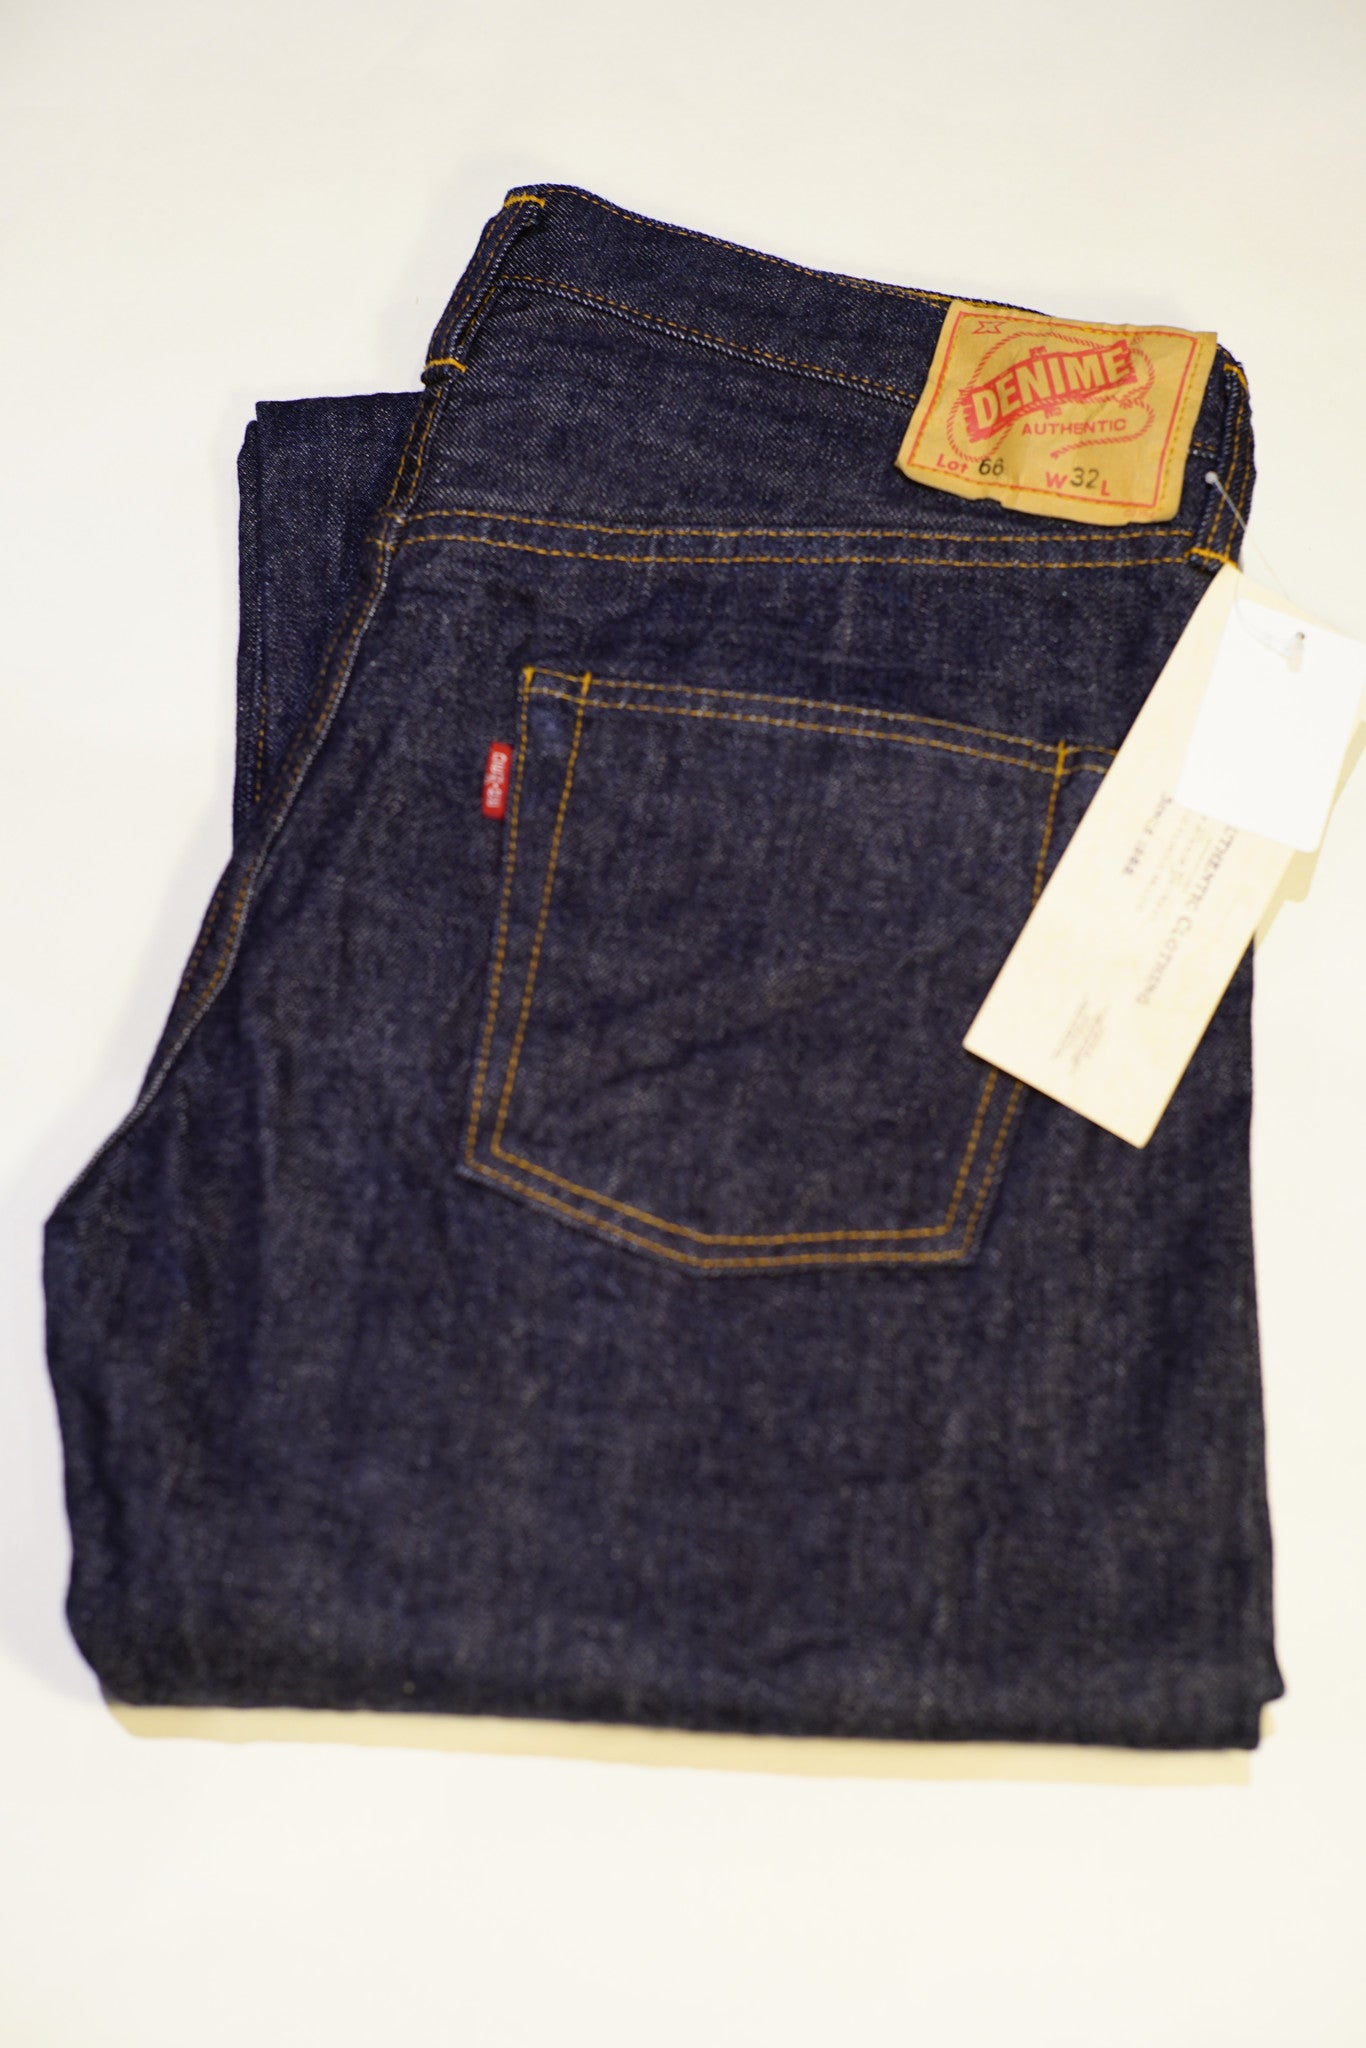 Denime 66 Made in Japan